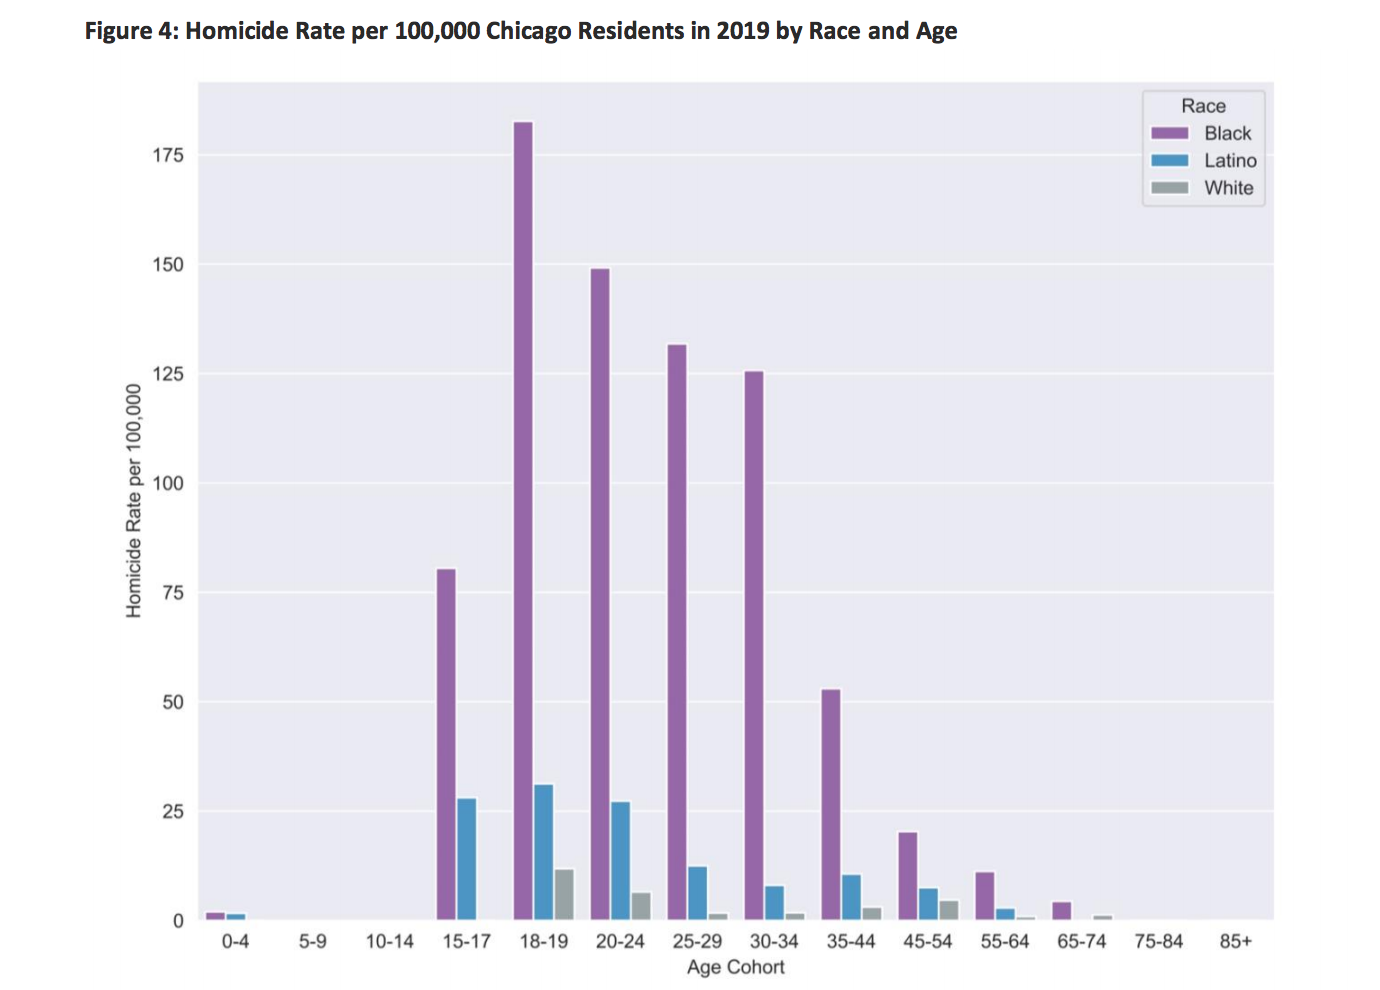 Homicide rate by age and race